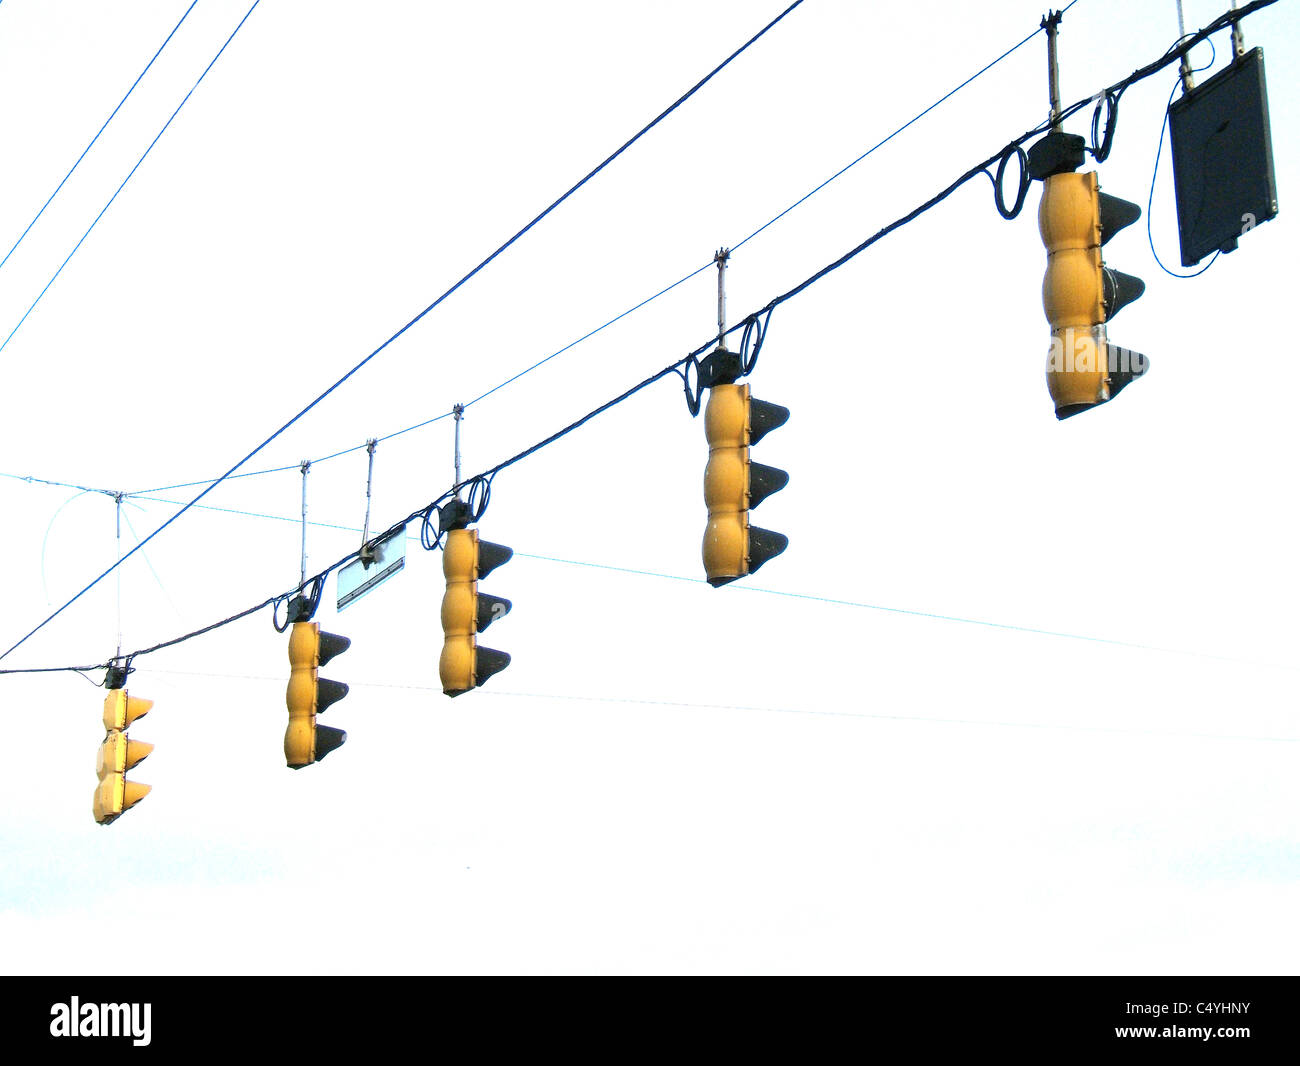 A hanging section of traffic lights and wires. - Stock Image